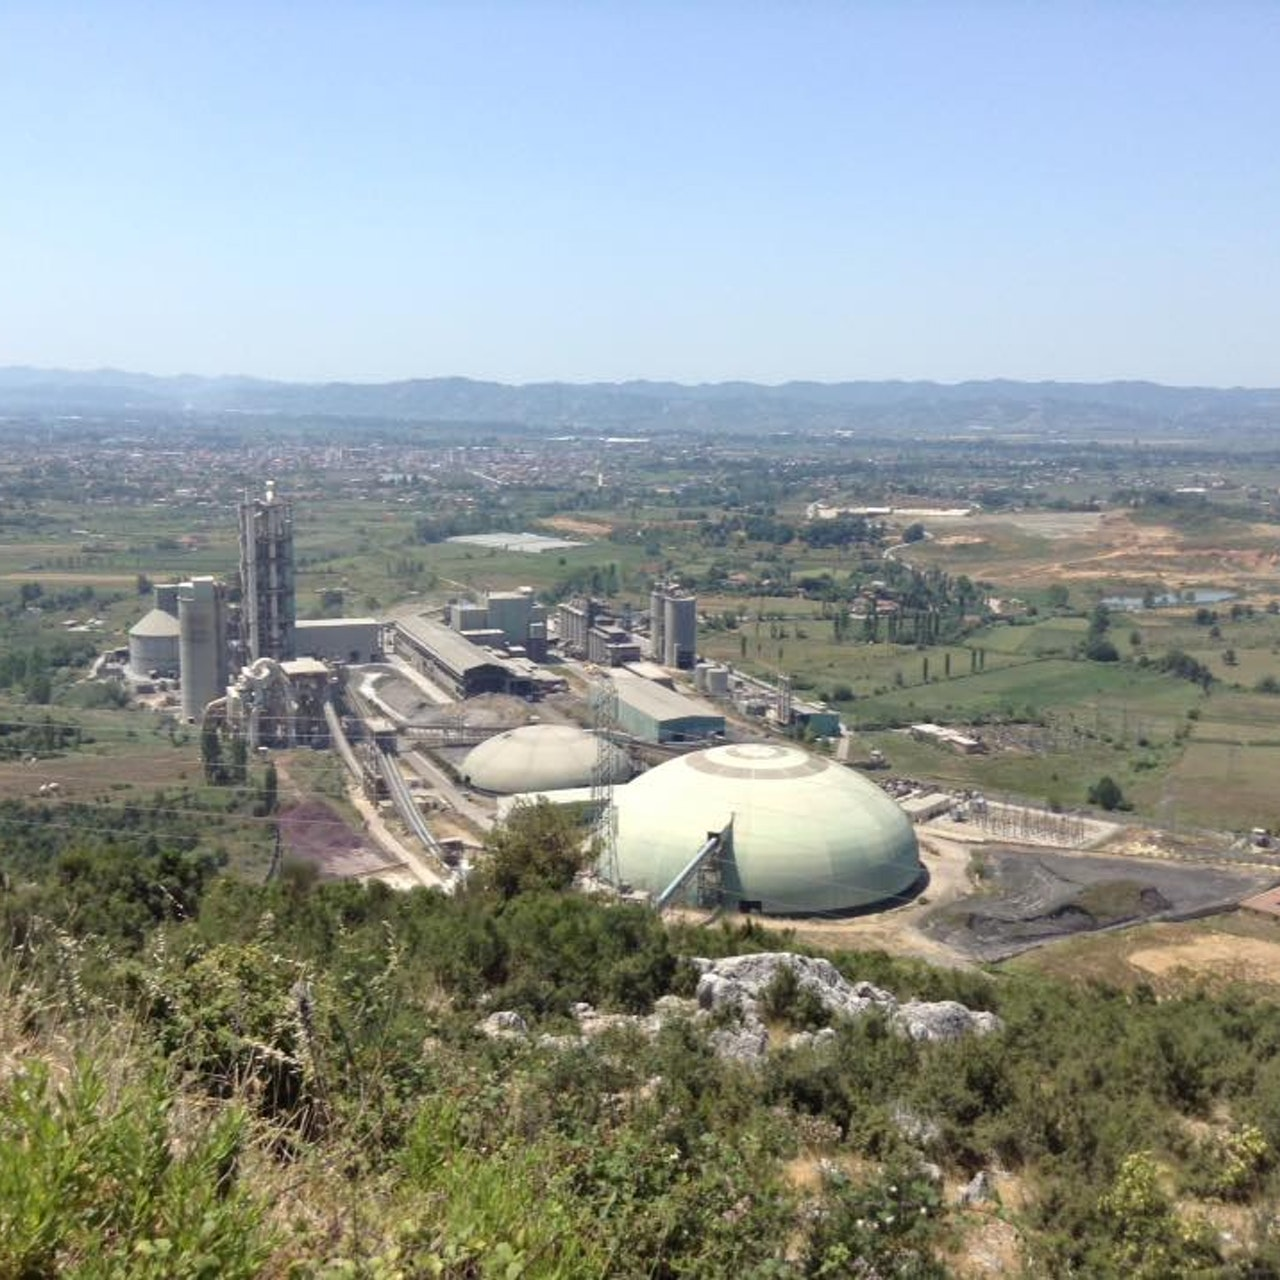 FUSHE KRUJE CEMENT FACTORY - 400 HA - AL